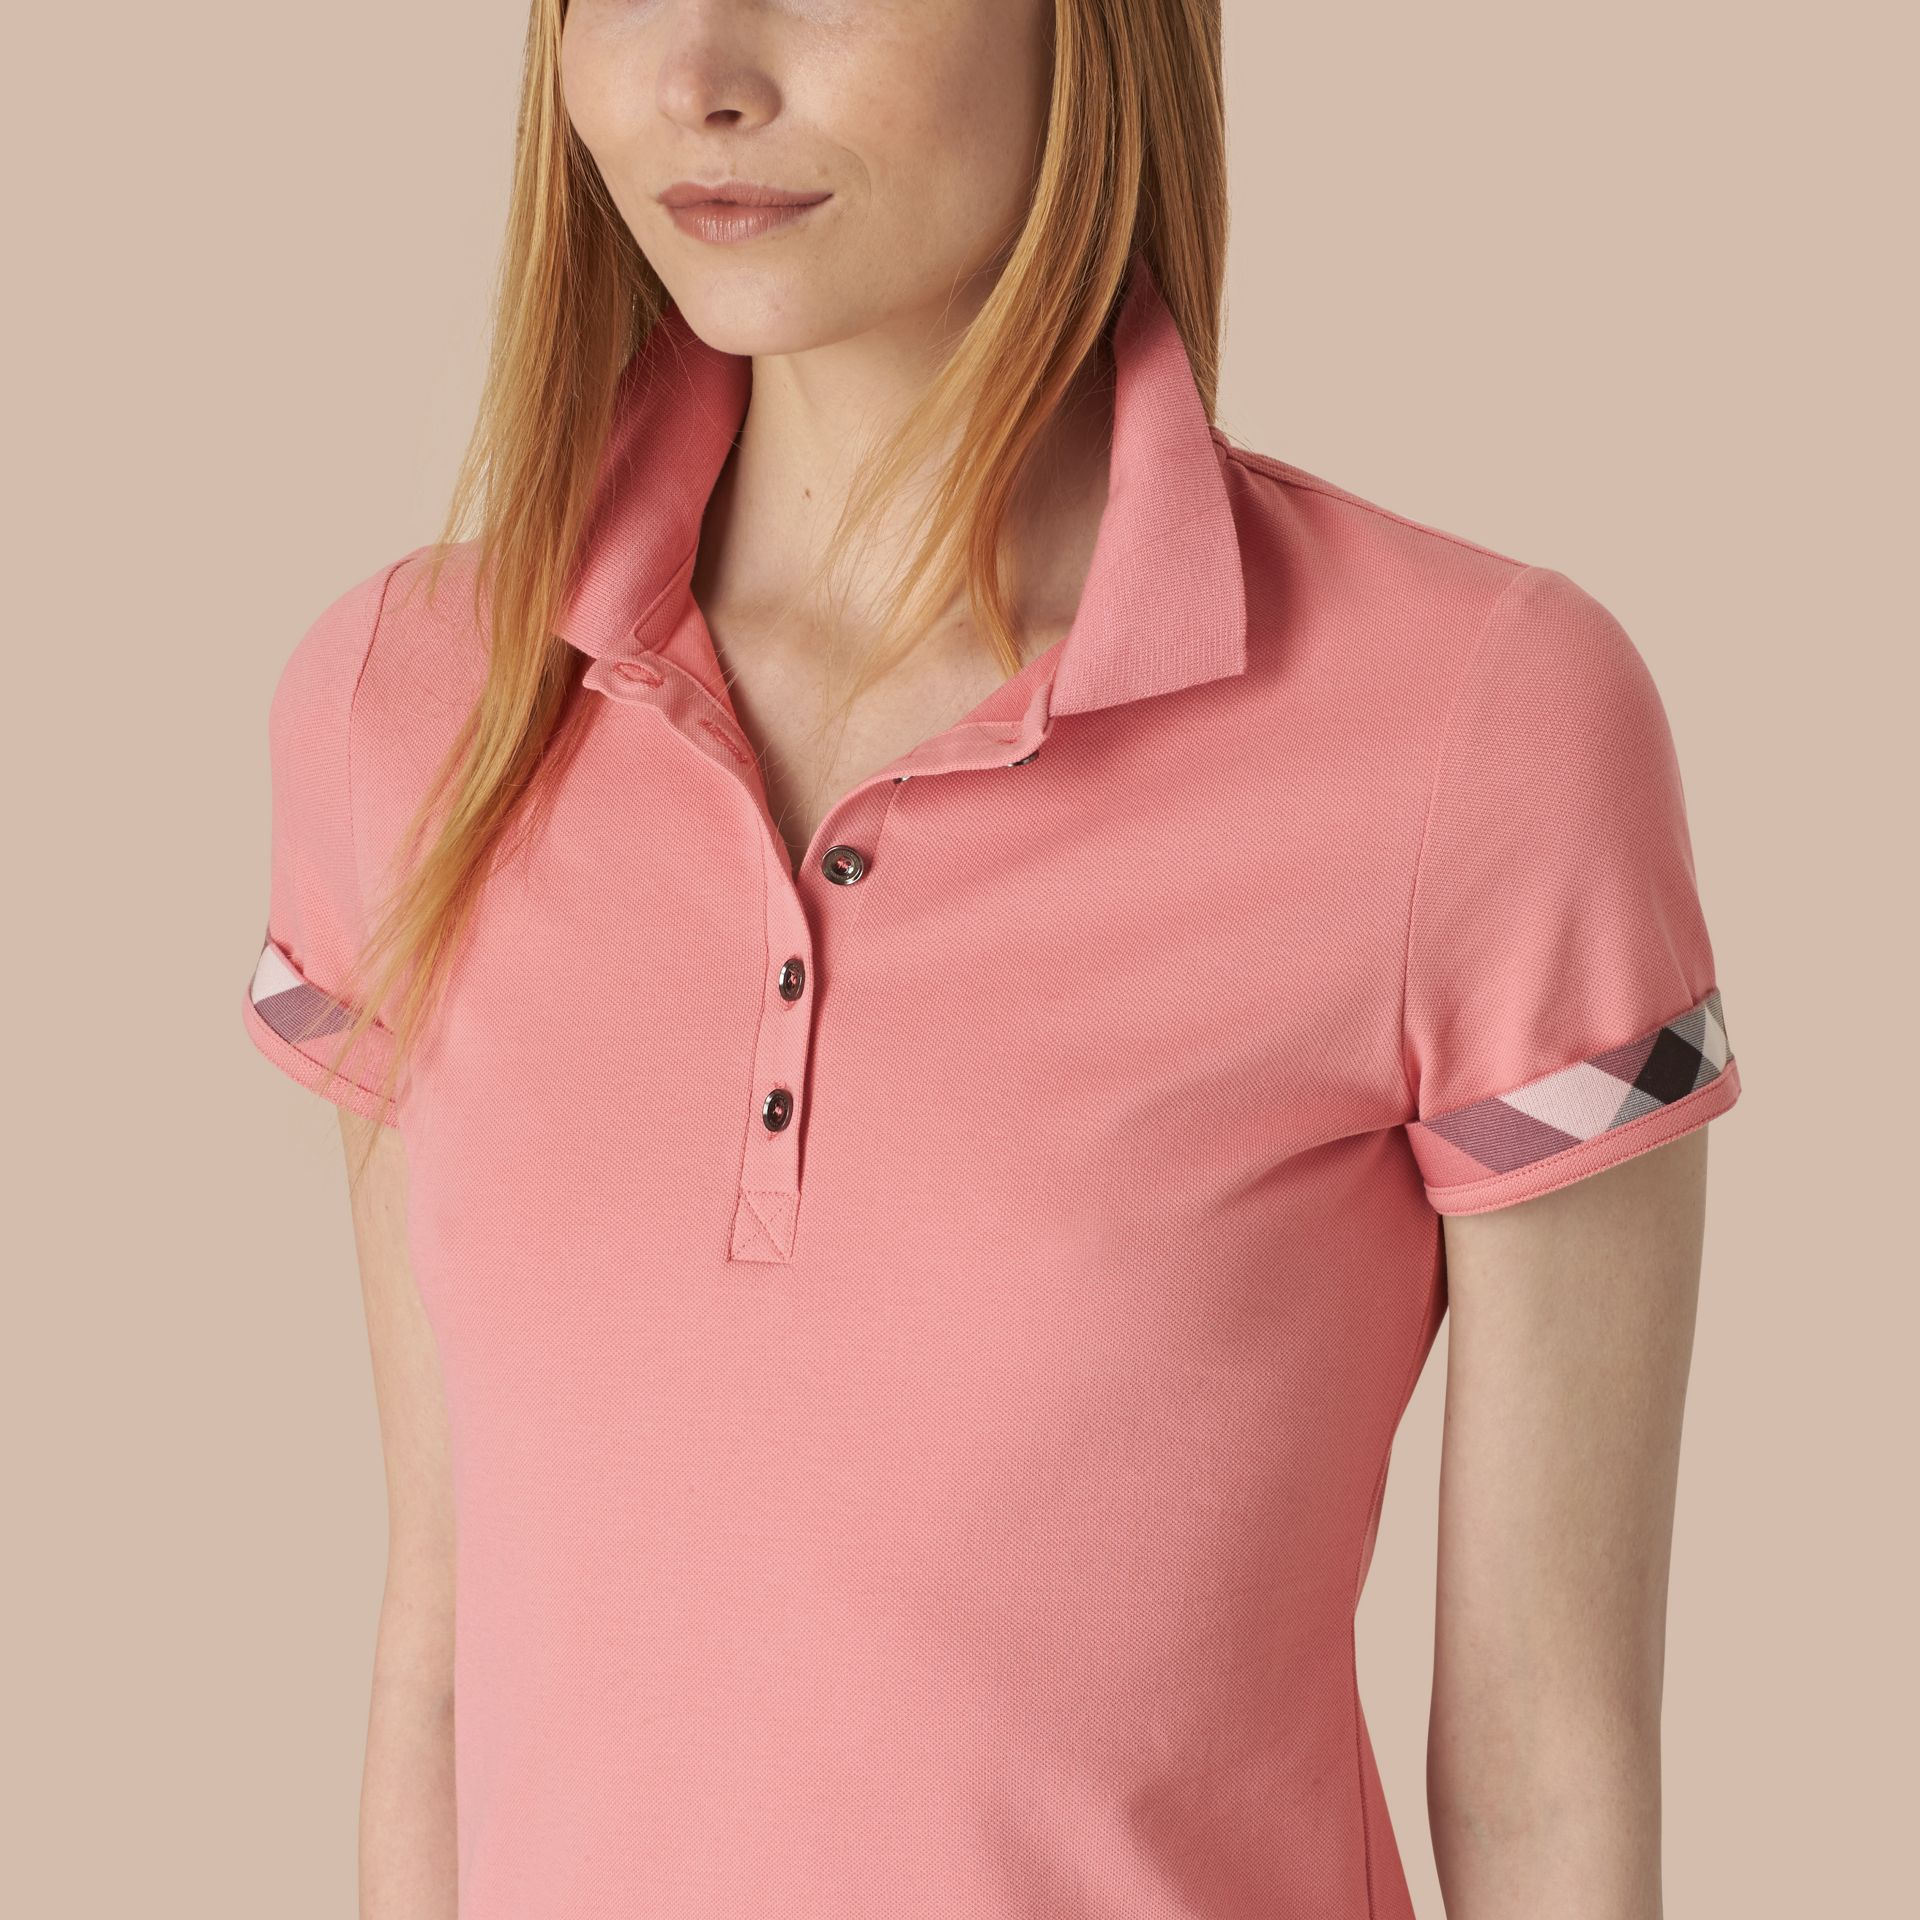 Carnation pink Check Trim Stretch Cotton Piqué Polo Shirt Carnation Pink - gallery image 4